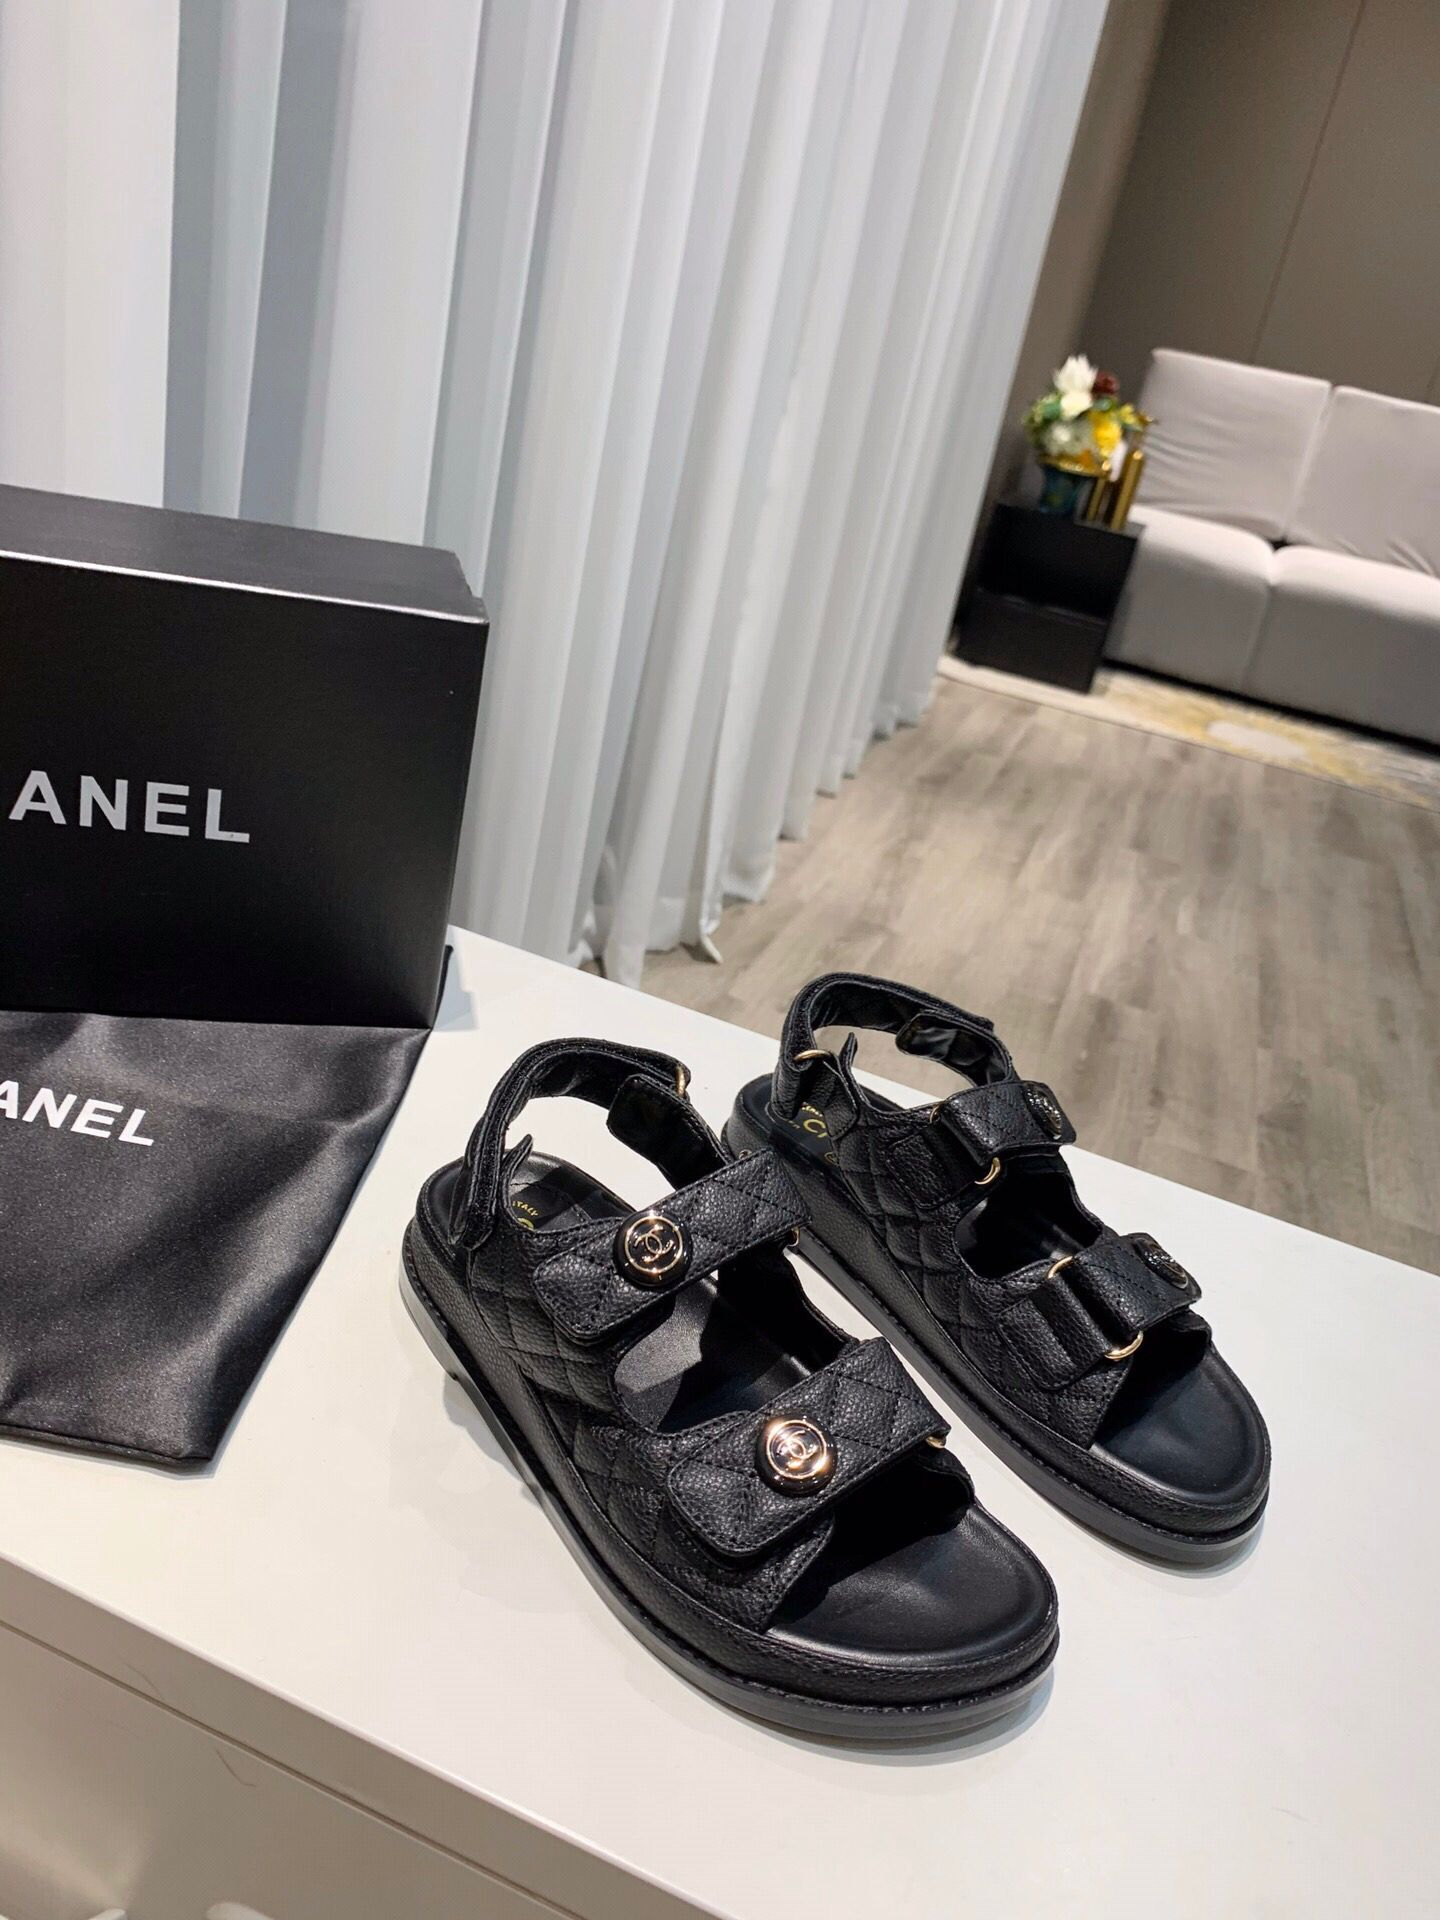 Chanel Sandals 2605